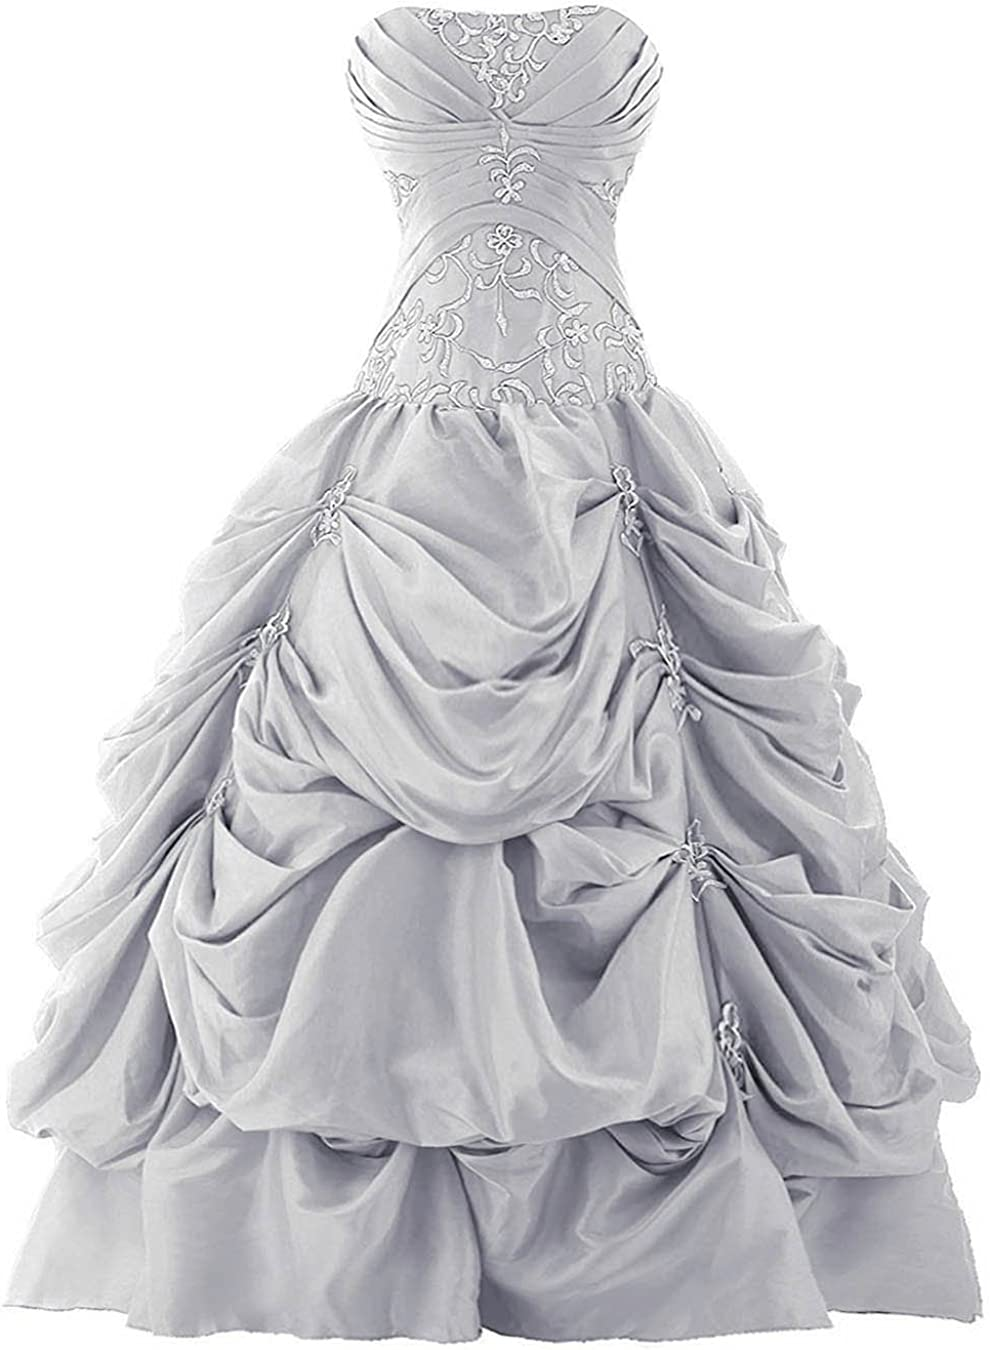 Vantexi Women's Strapless Ranking TOP6 Silver mart Embroidery Qu Pick-up Prom Gown